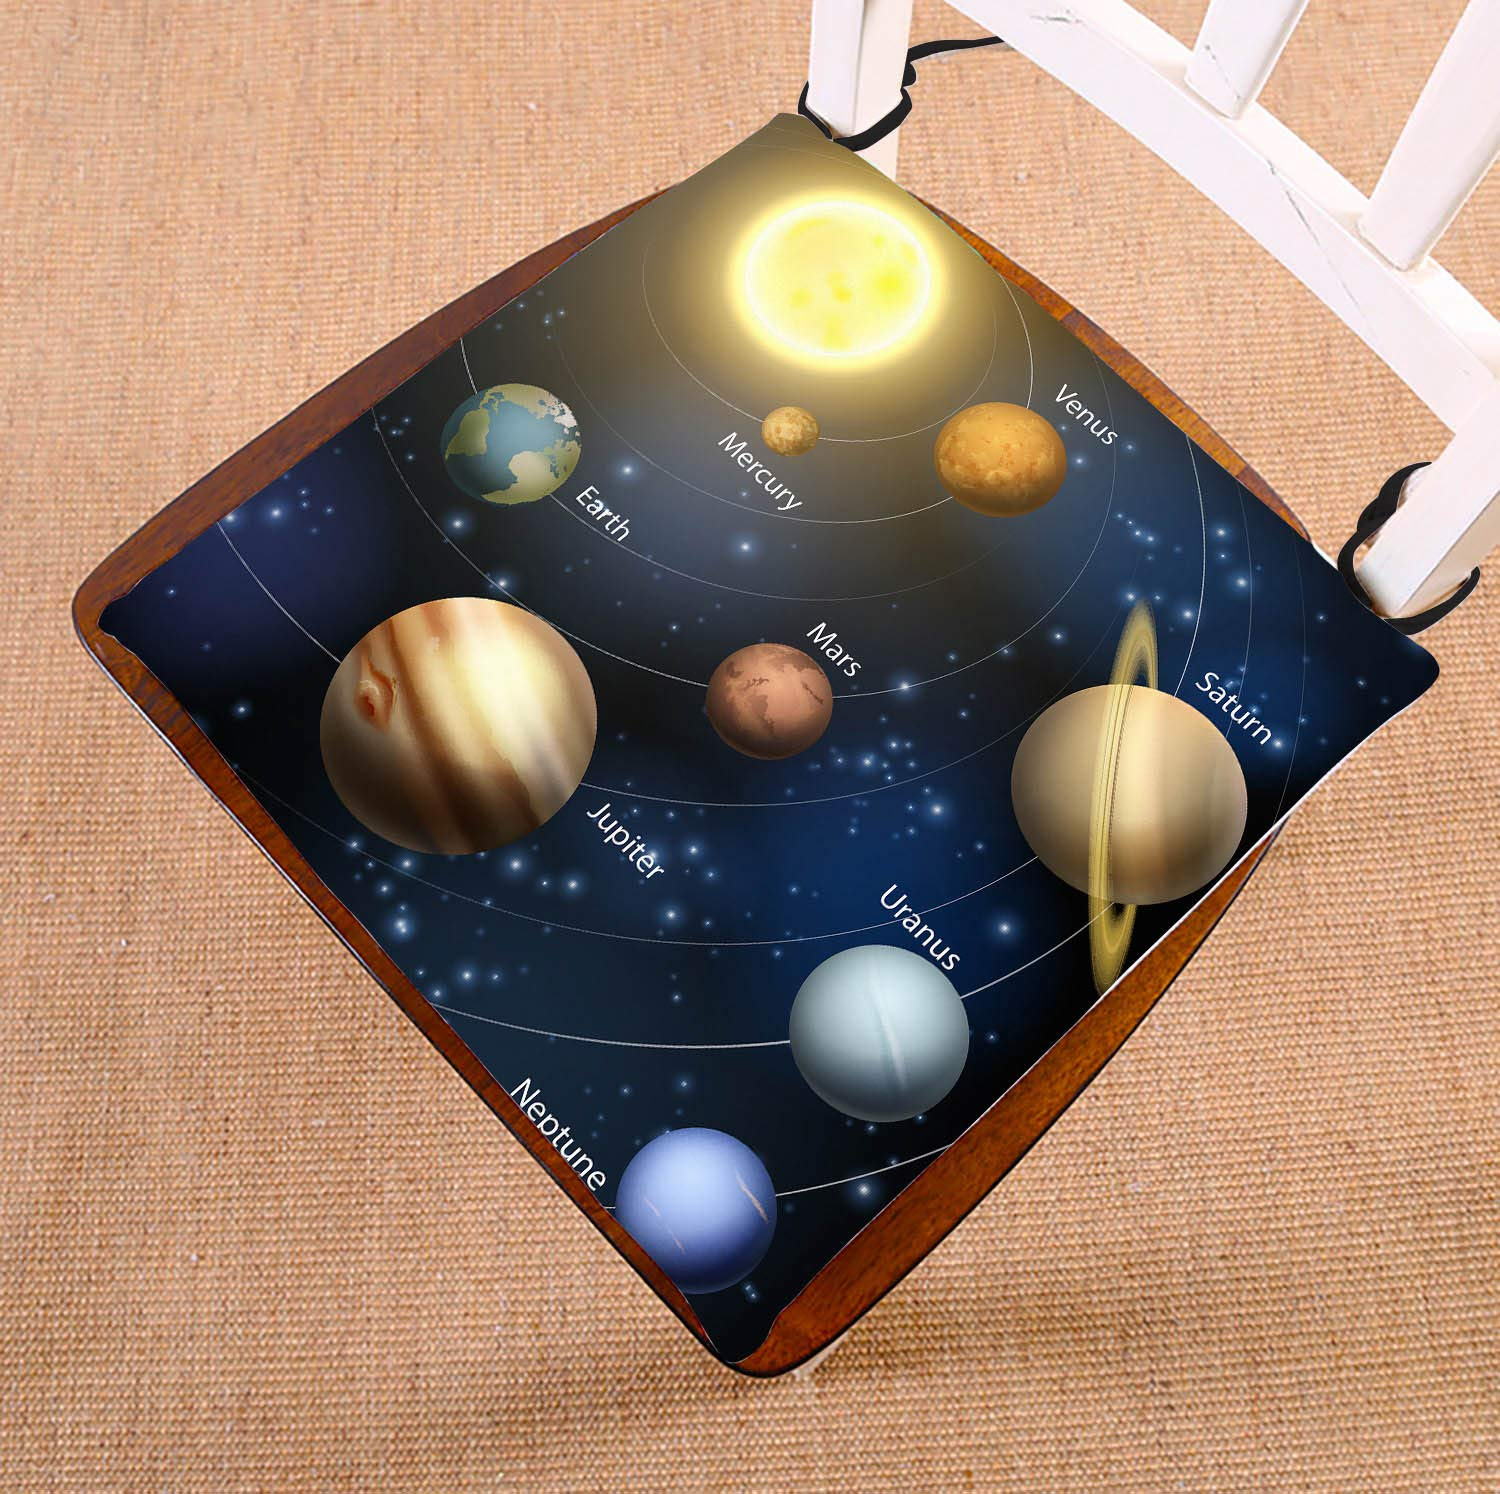 Custom Planetary Orbit Educational Solar System Planets Seat Cushion Chair Cushion Floor Cushion Twin Sides 16x16 inches